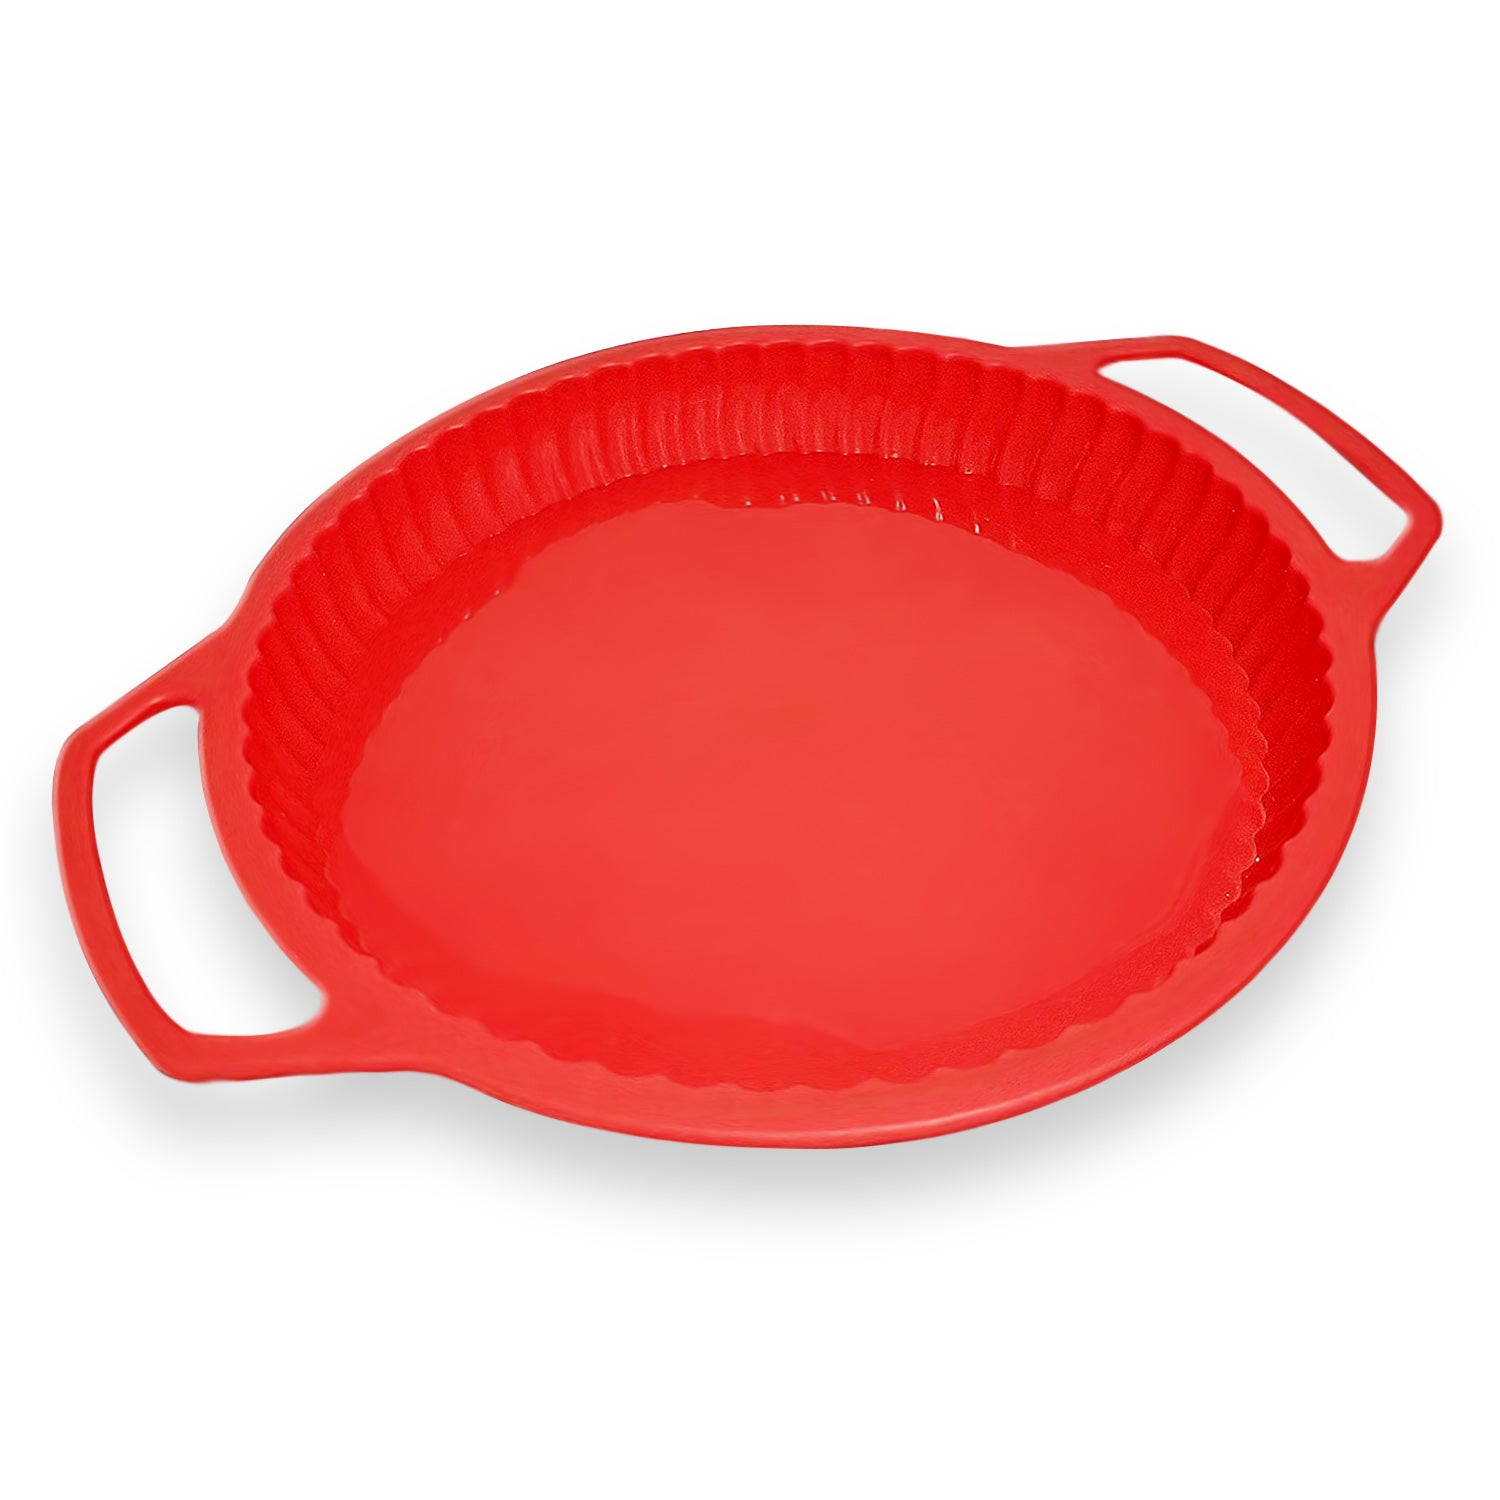 Silicone Pie Tart Quiche Baking Pan With Metal Reinforced Handle